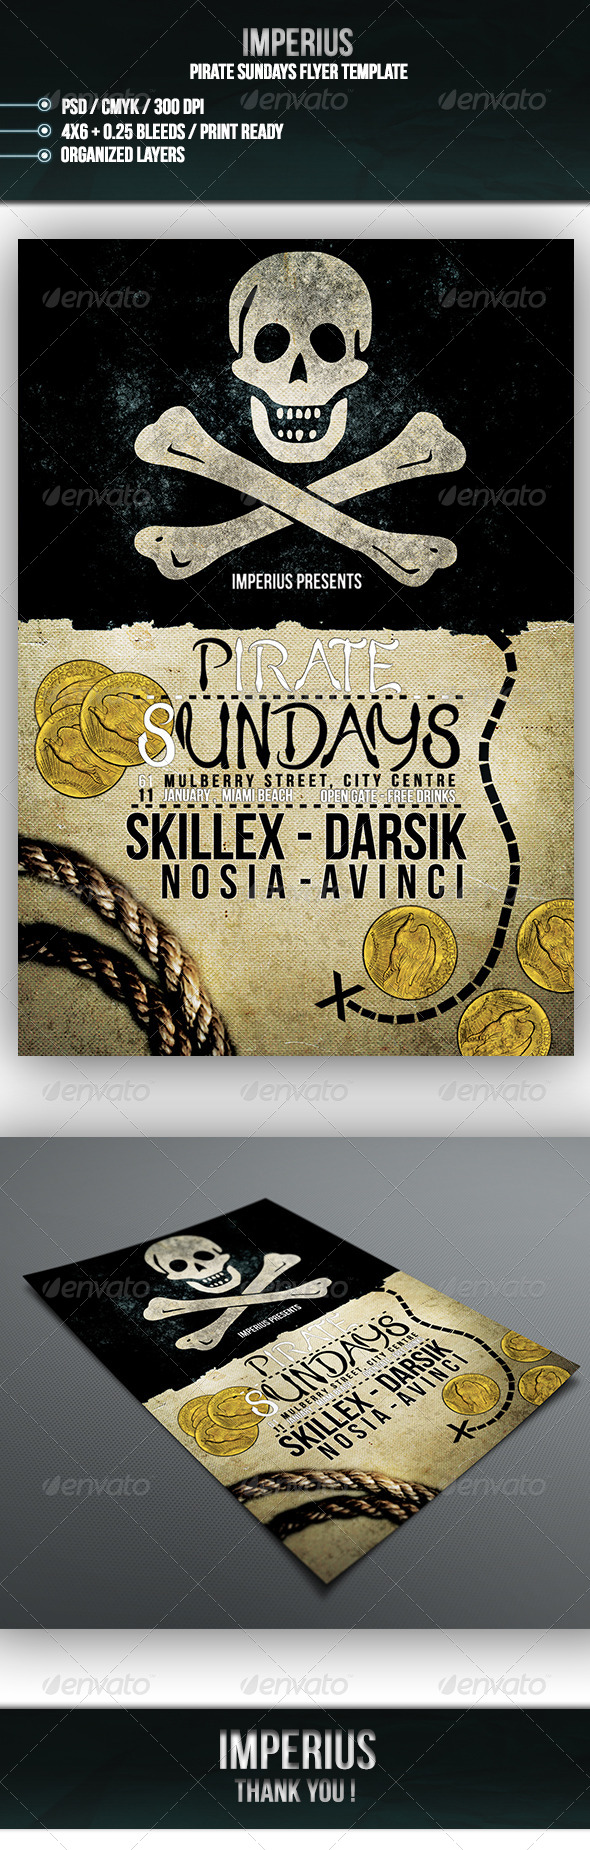 GraphicRiver Pirate Sundays Flyer 7101969